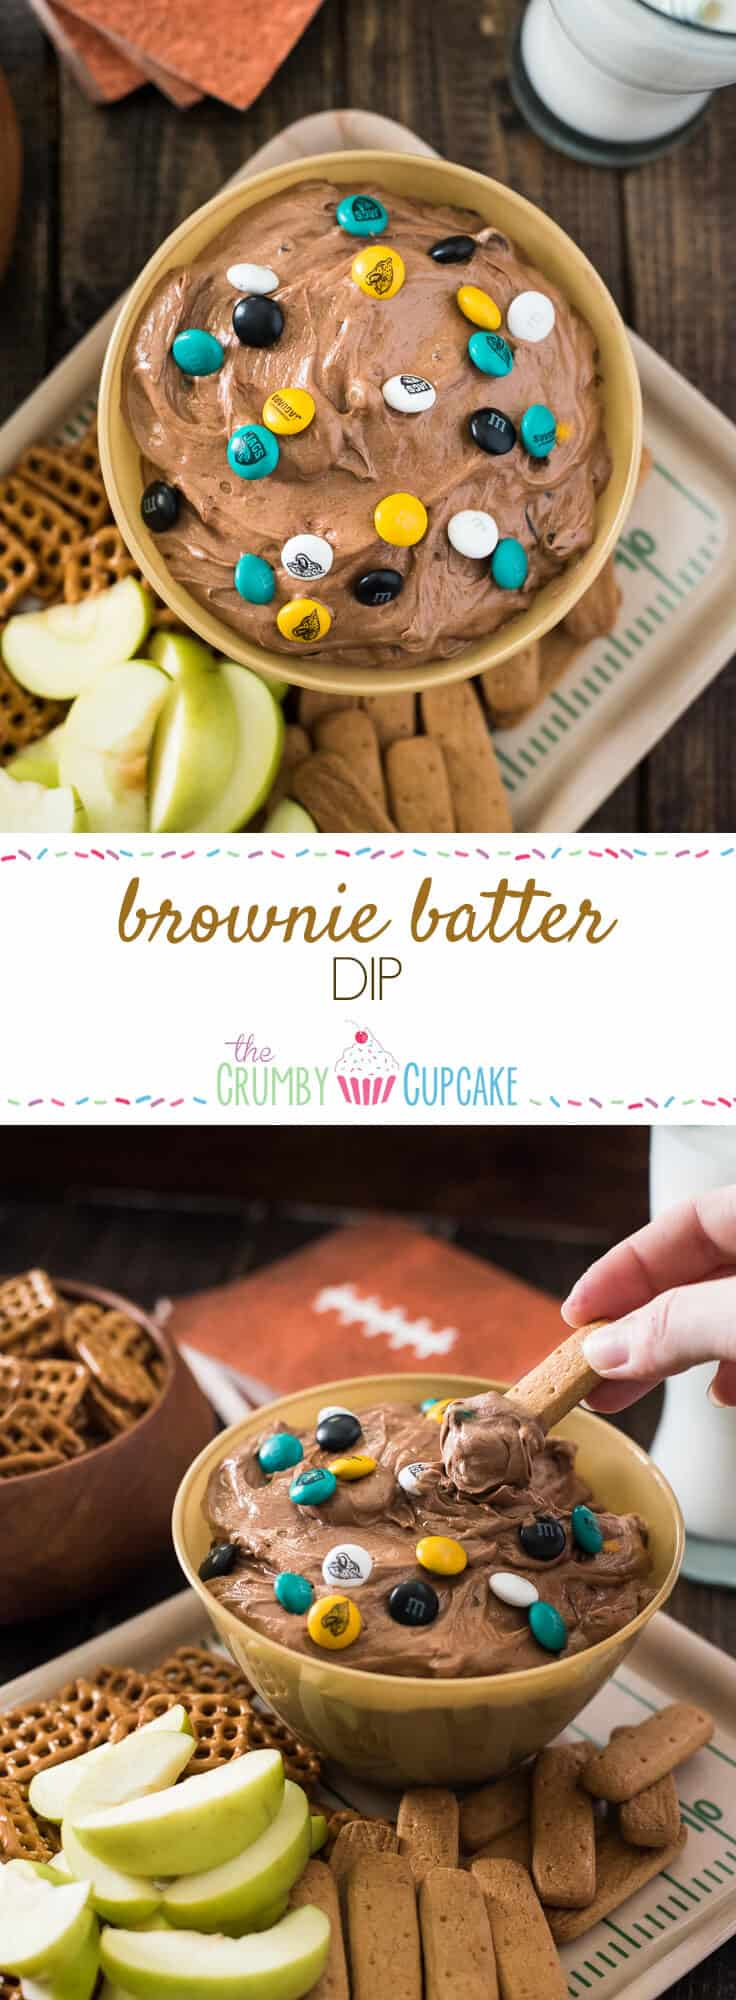 The easiest, most fun way to eat brownies! This Brownie Batter Dip is loaded with mini chocolate chips and M&Ms - any color will do, but bonus points if they're repping your favorite team!